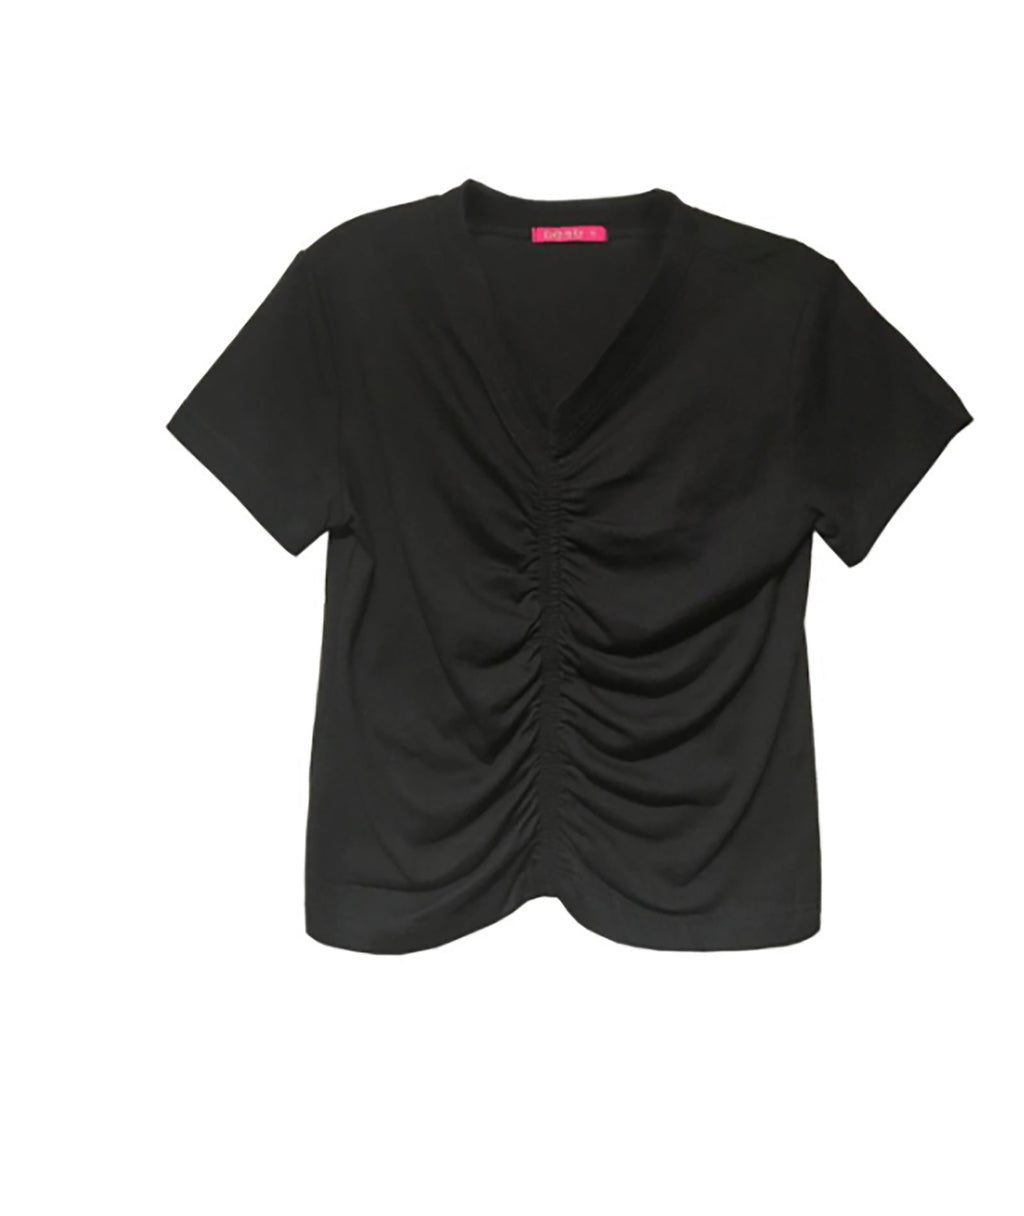 Me.n.u Girls Black V Neck Cinched Tee